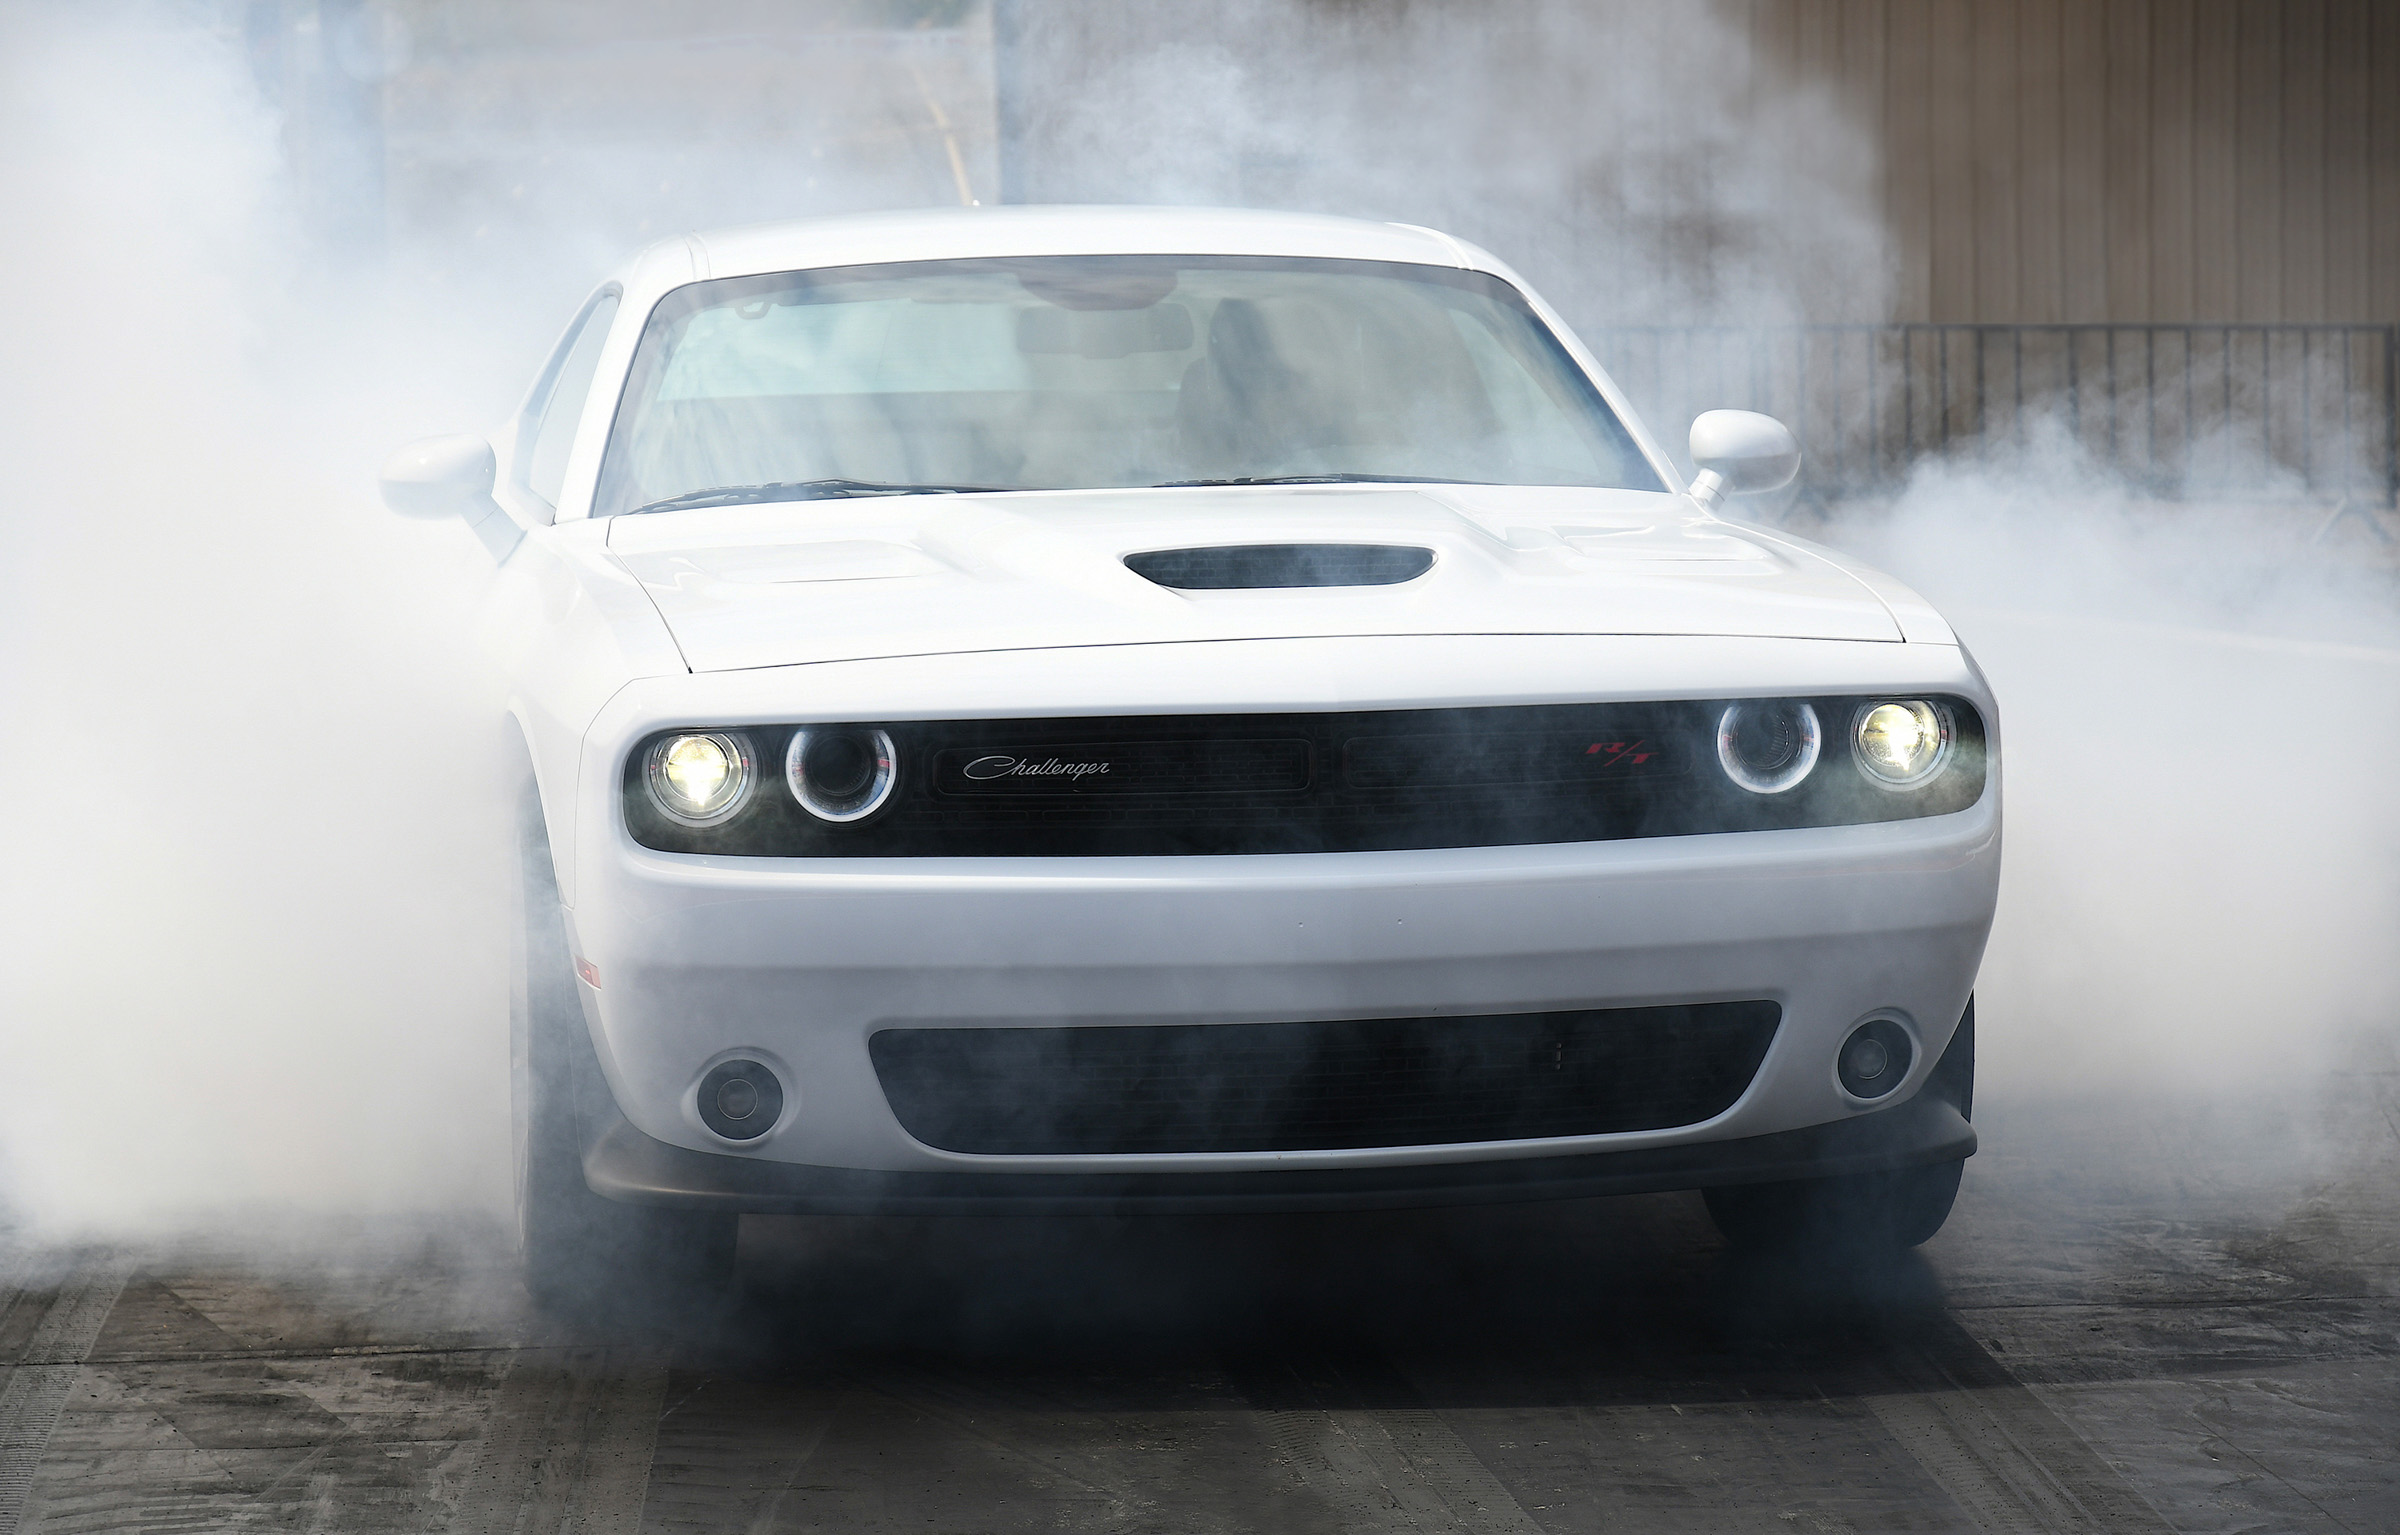 2019 Dodge Challenger R/T Scat Pack 1320 white burnout